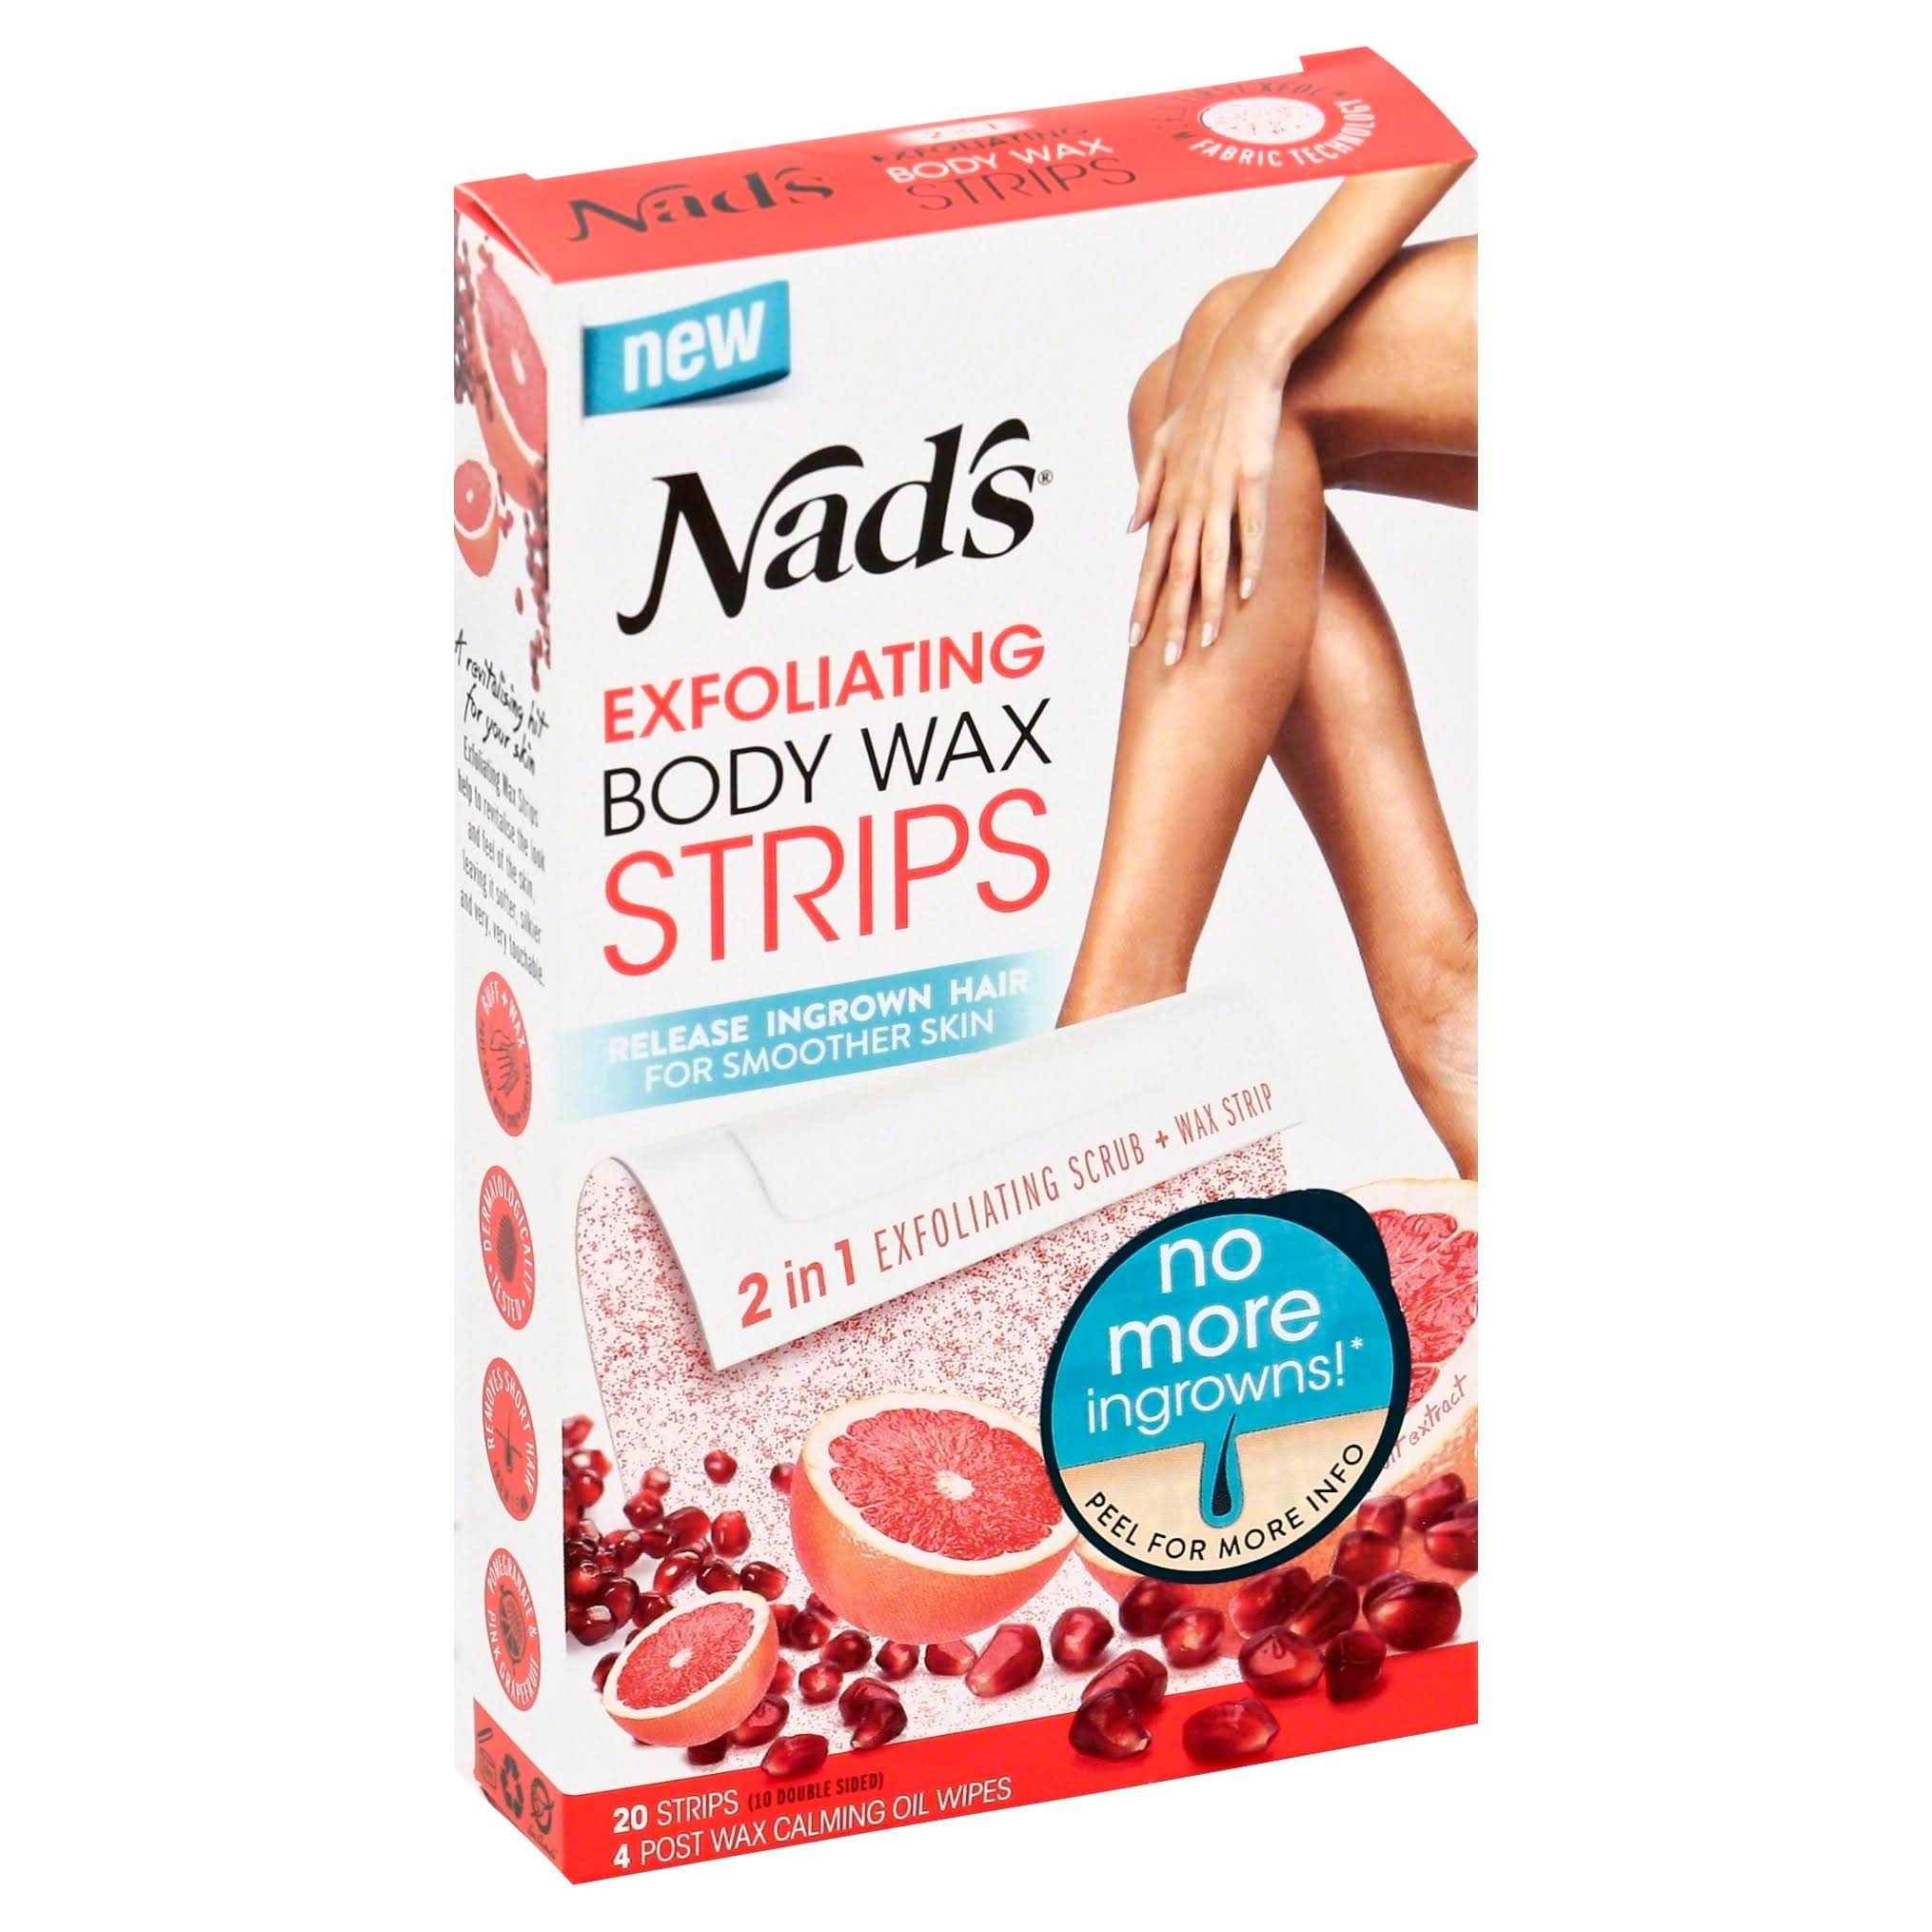 Nad's Ultra Smoothing 2 in 1 Hair Removal Exfoliating Body Wax Strips - 20 Strips